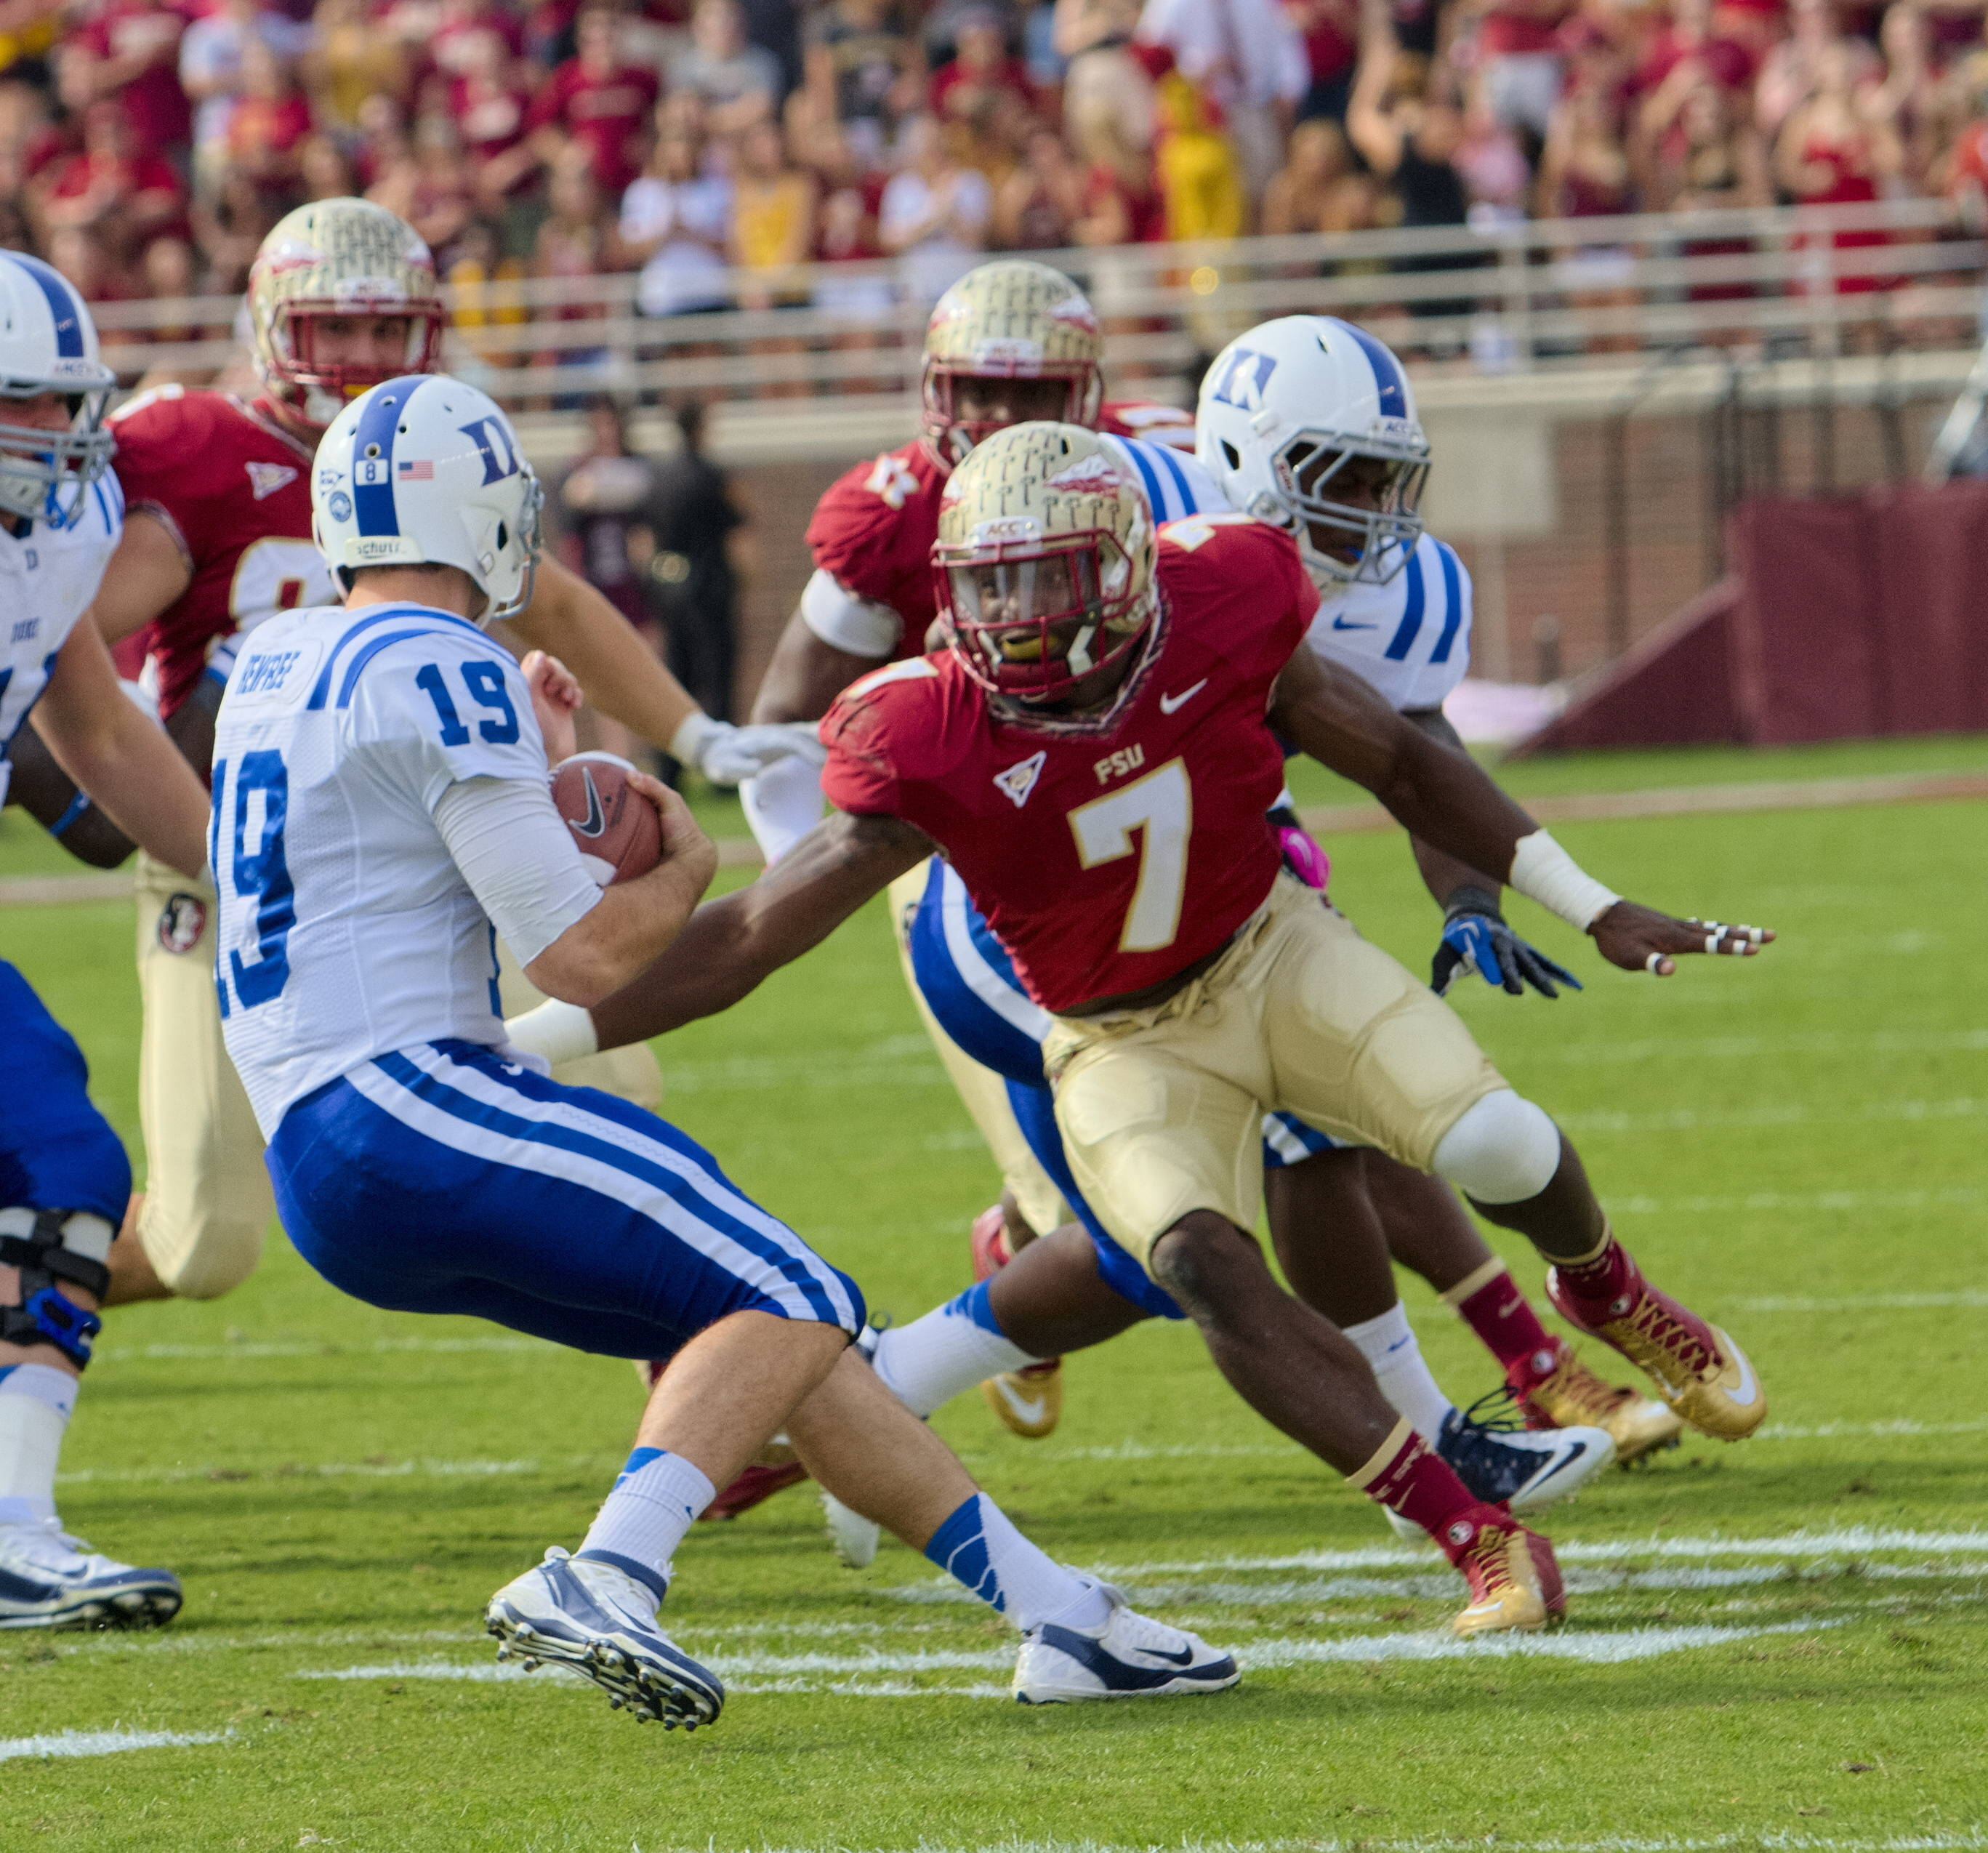 Christian Jones (7), FSU vs Duke, 10/27/12. (Photo by Steve Musco)